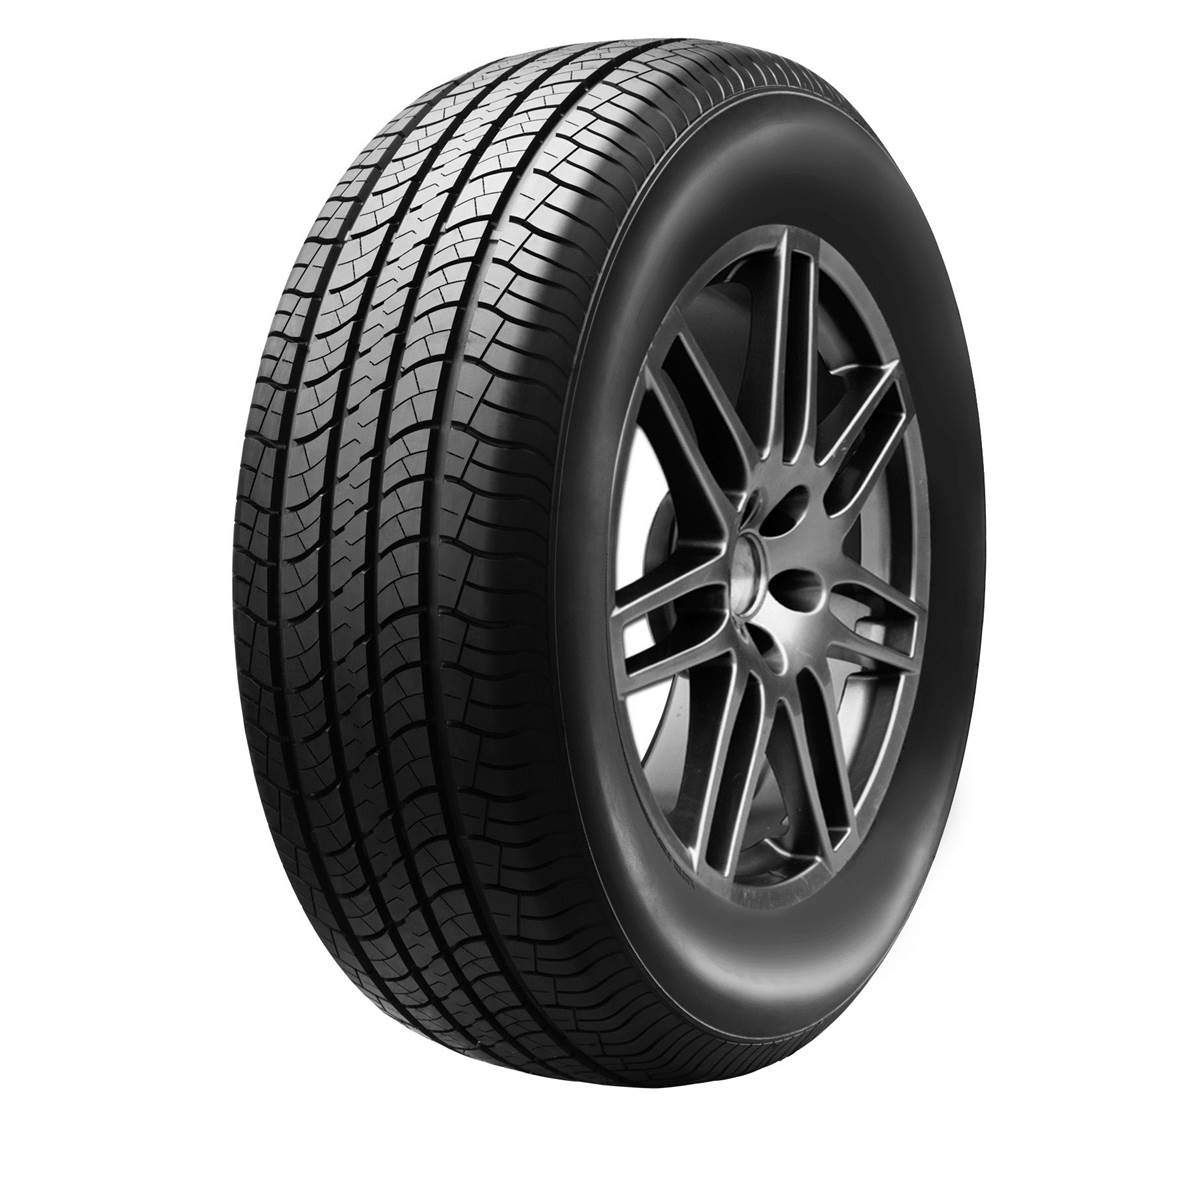 Pneu 4X4 Rovelo 215/65R16 102H Road Quest Ht XL